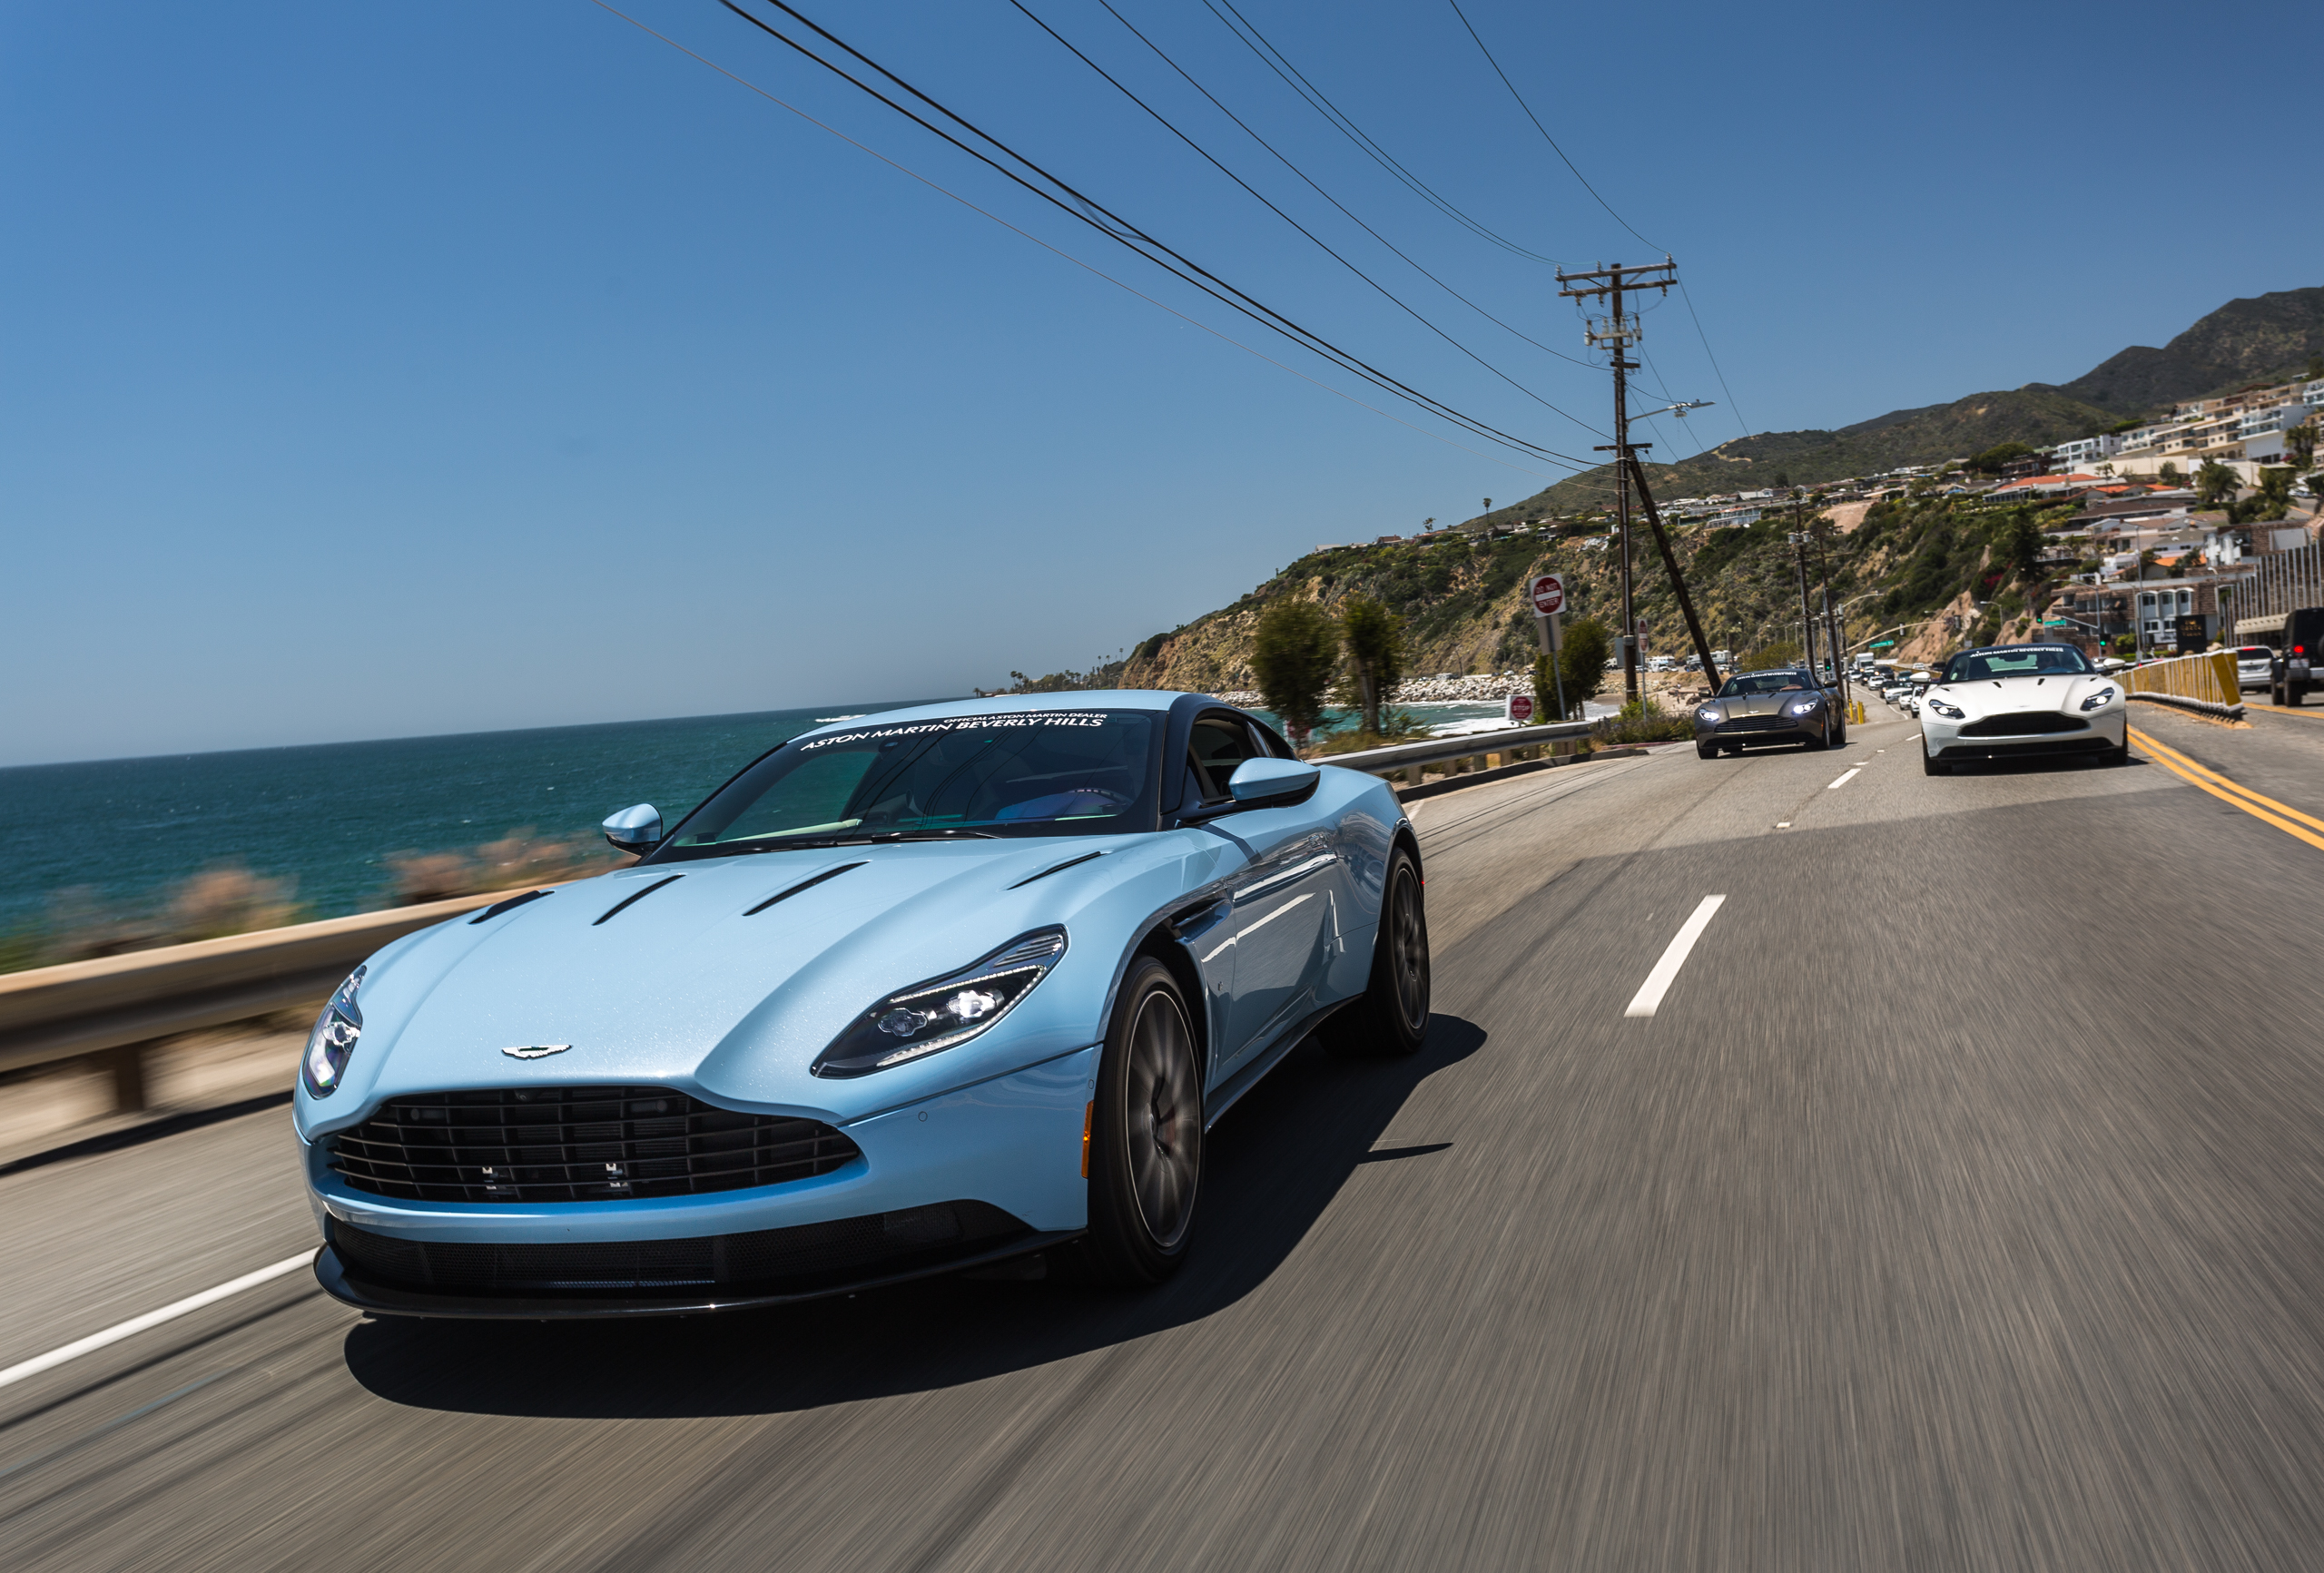 BRUNCH AT SOHO MALIBU - AN ASTON MARTIN BEVERLY HILLS DRIVE